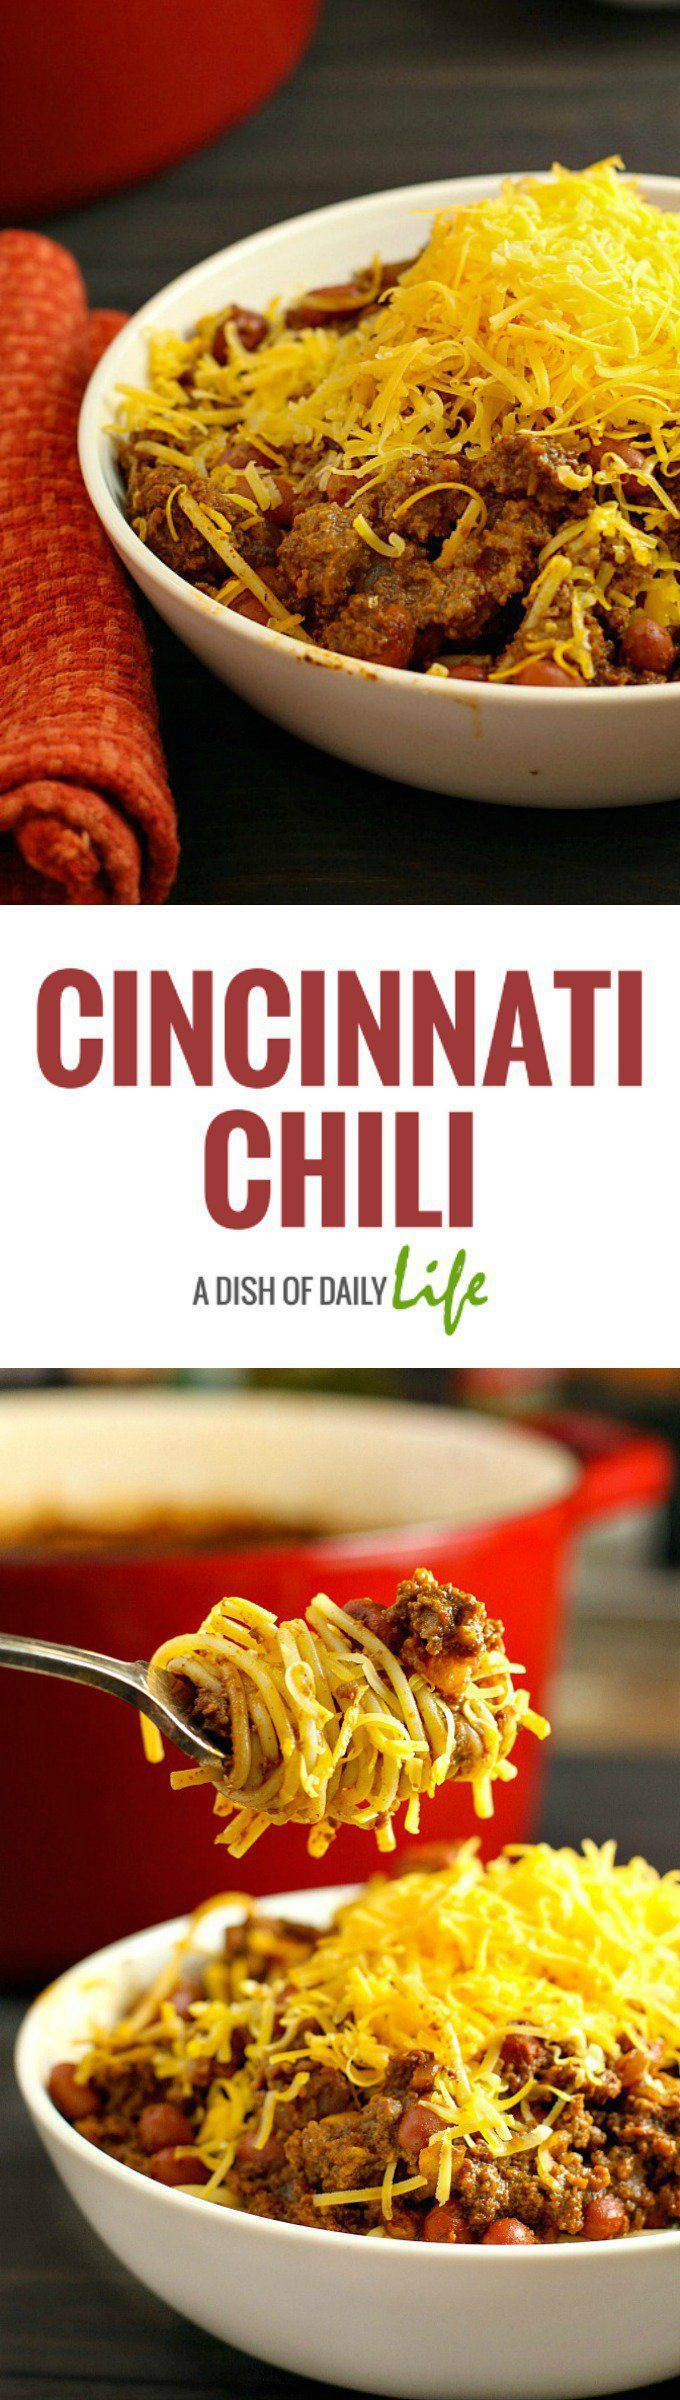 Cincinnati Chili...a delicious chili with a unique spice combination, served over spaghetti and topped with cheese. One of our family favorites!